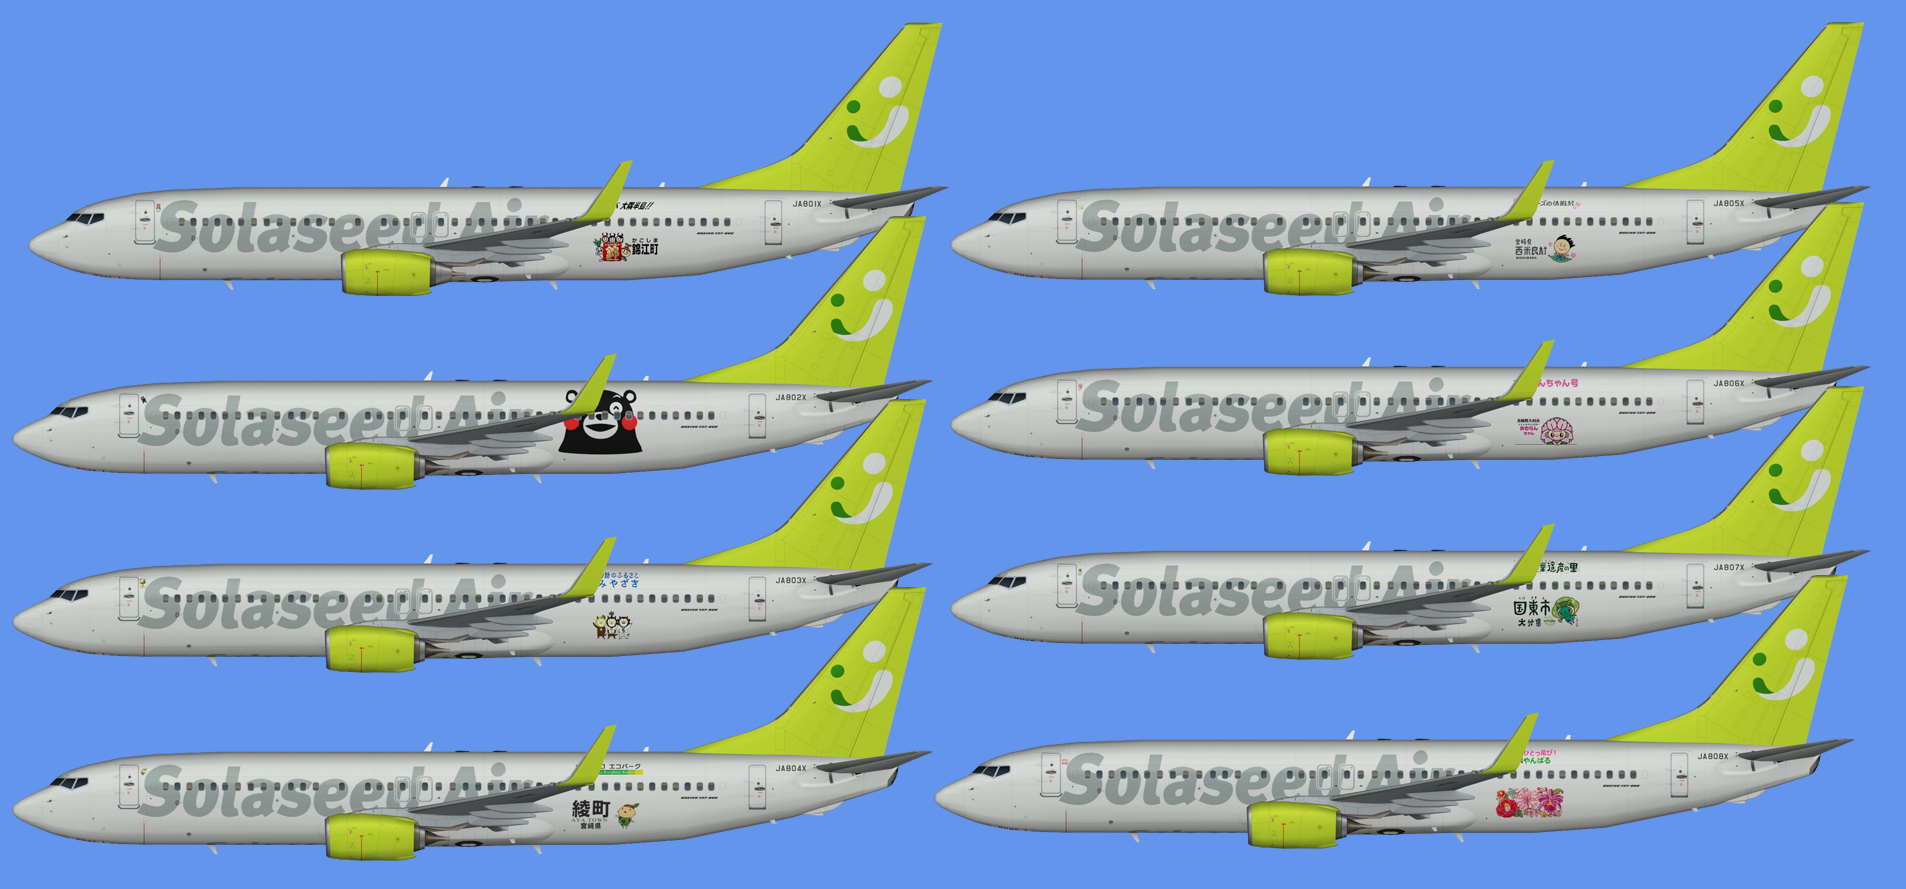 Solaseed Air Boeing 737-800 logojets